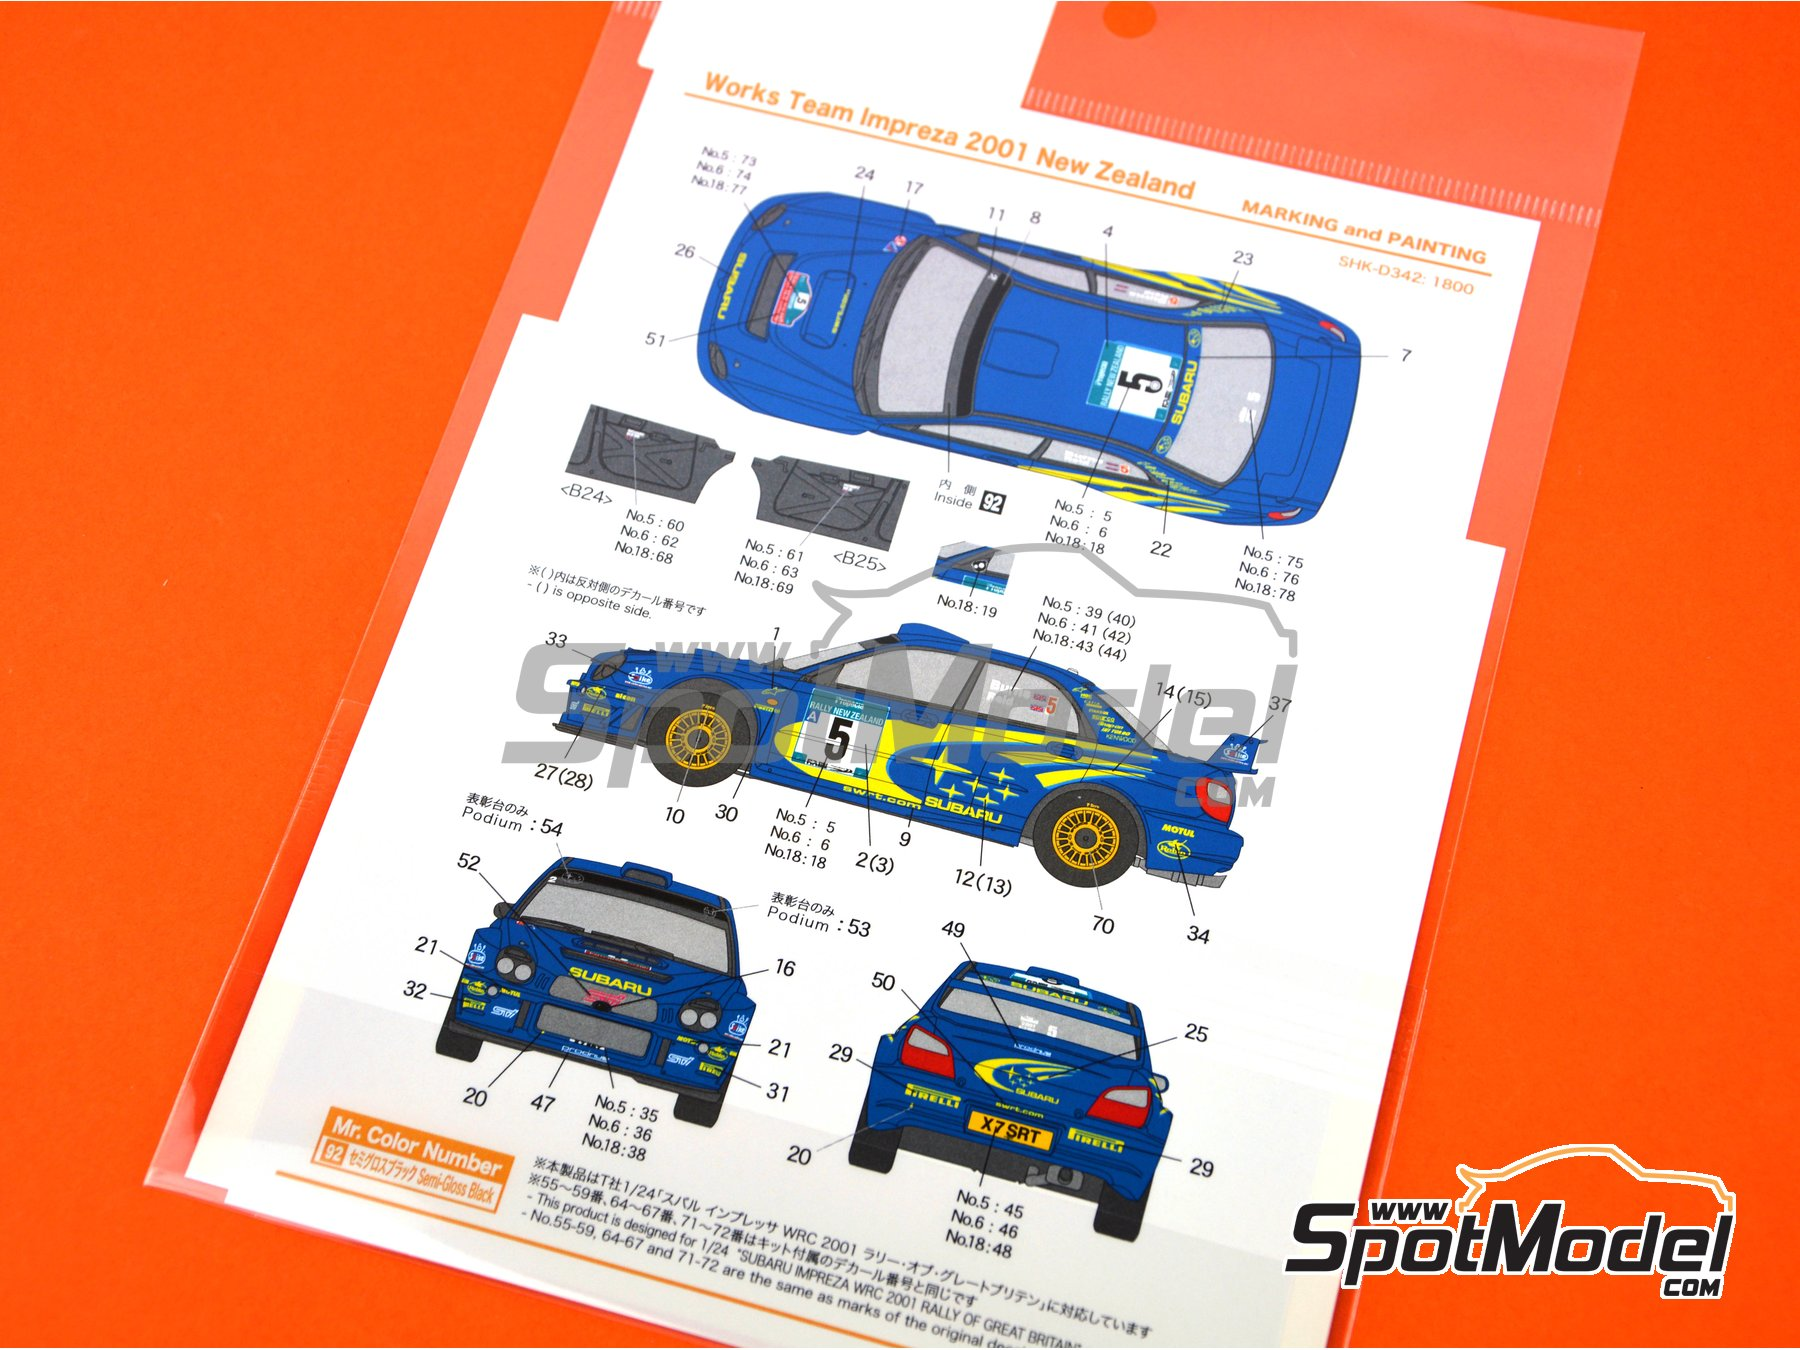 Image 3: Subaru Impreza WRC Works Team Impreza - New Zealand rally 2001 | Marking / livery in 1/24 scale manufactured by Shunko Models (ref. SHK-D342)